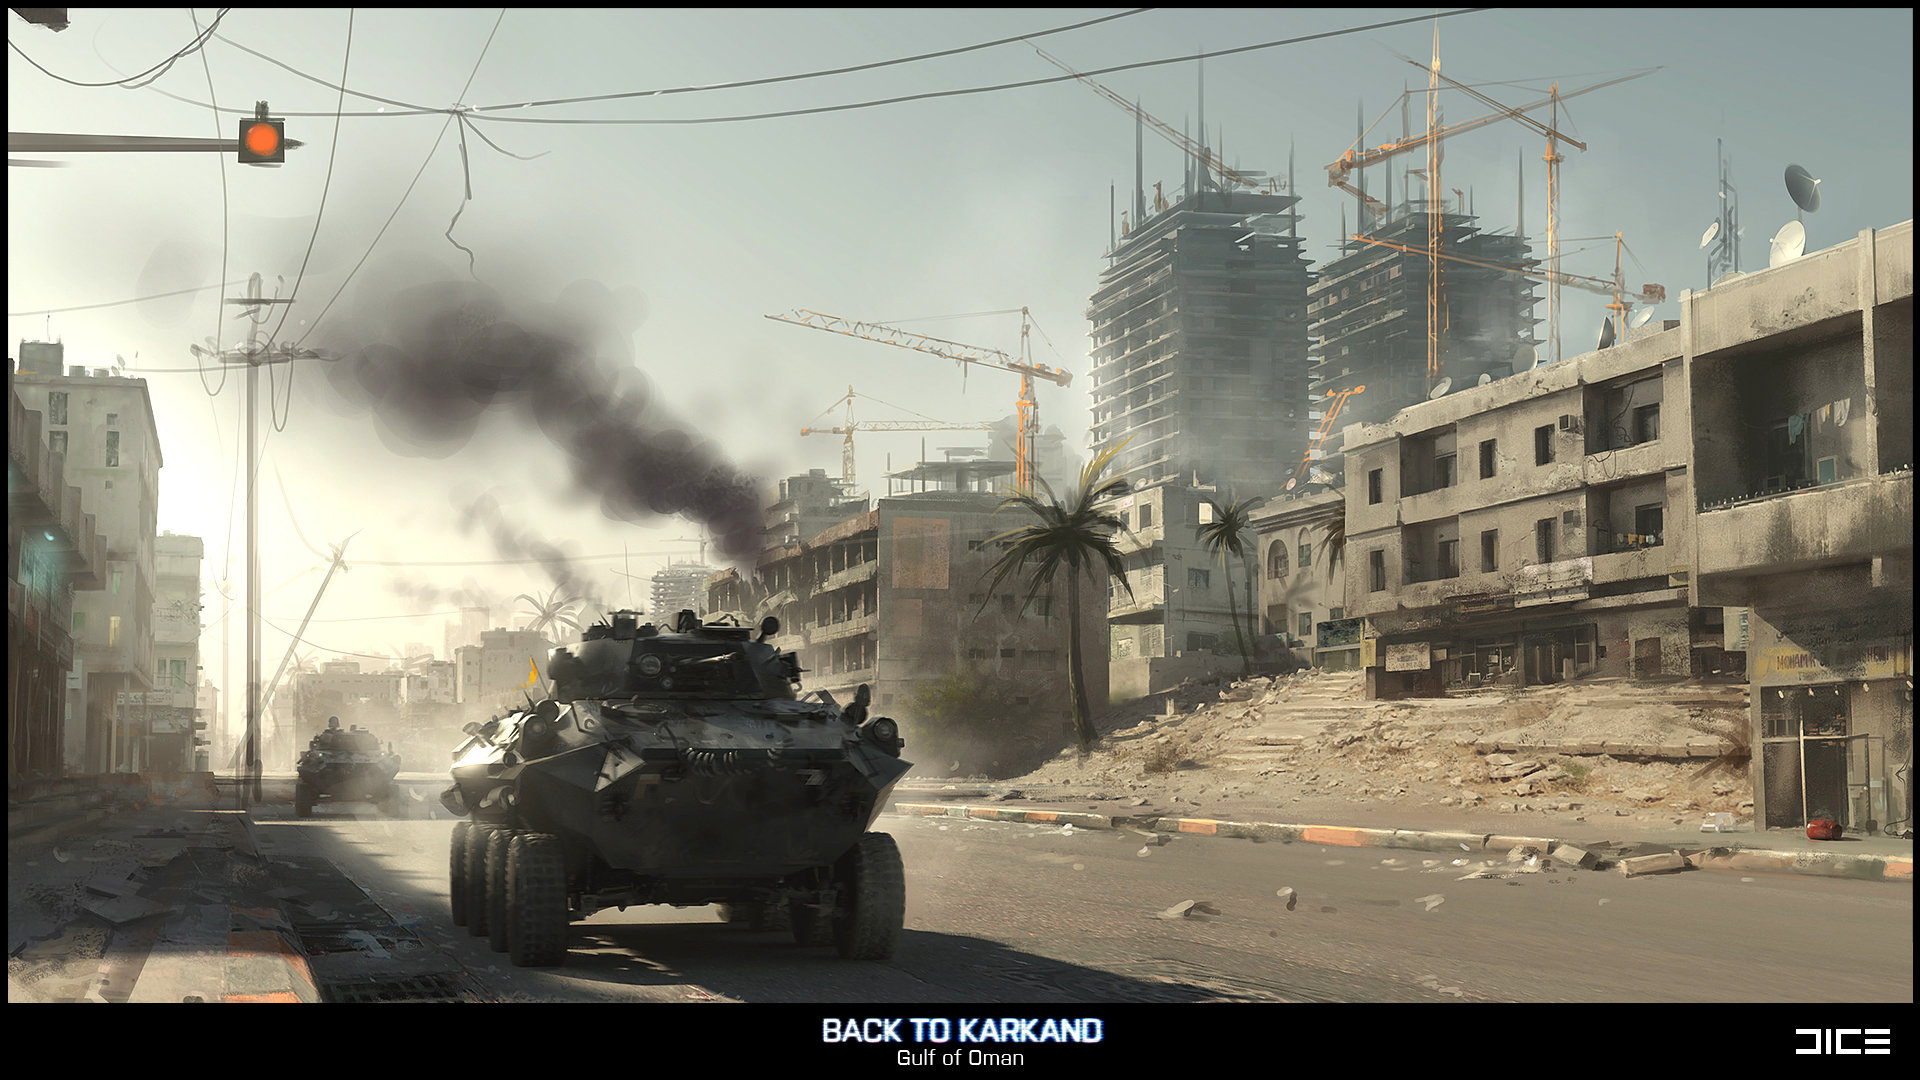 Battlefield 3: Back to Karkand (Gulf of Oman, Concept)